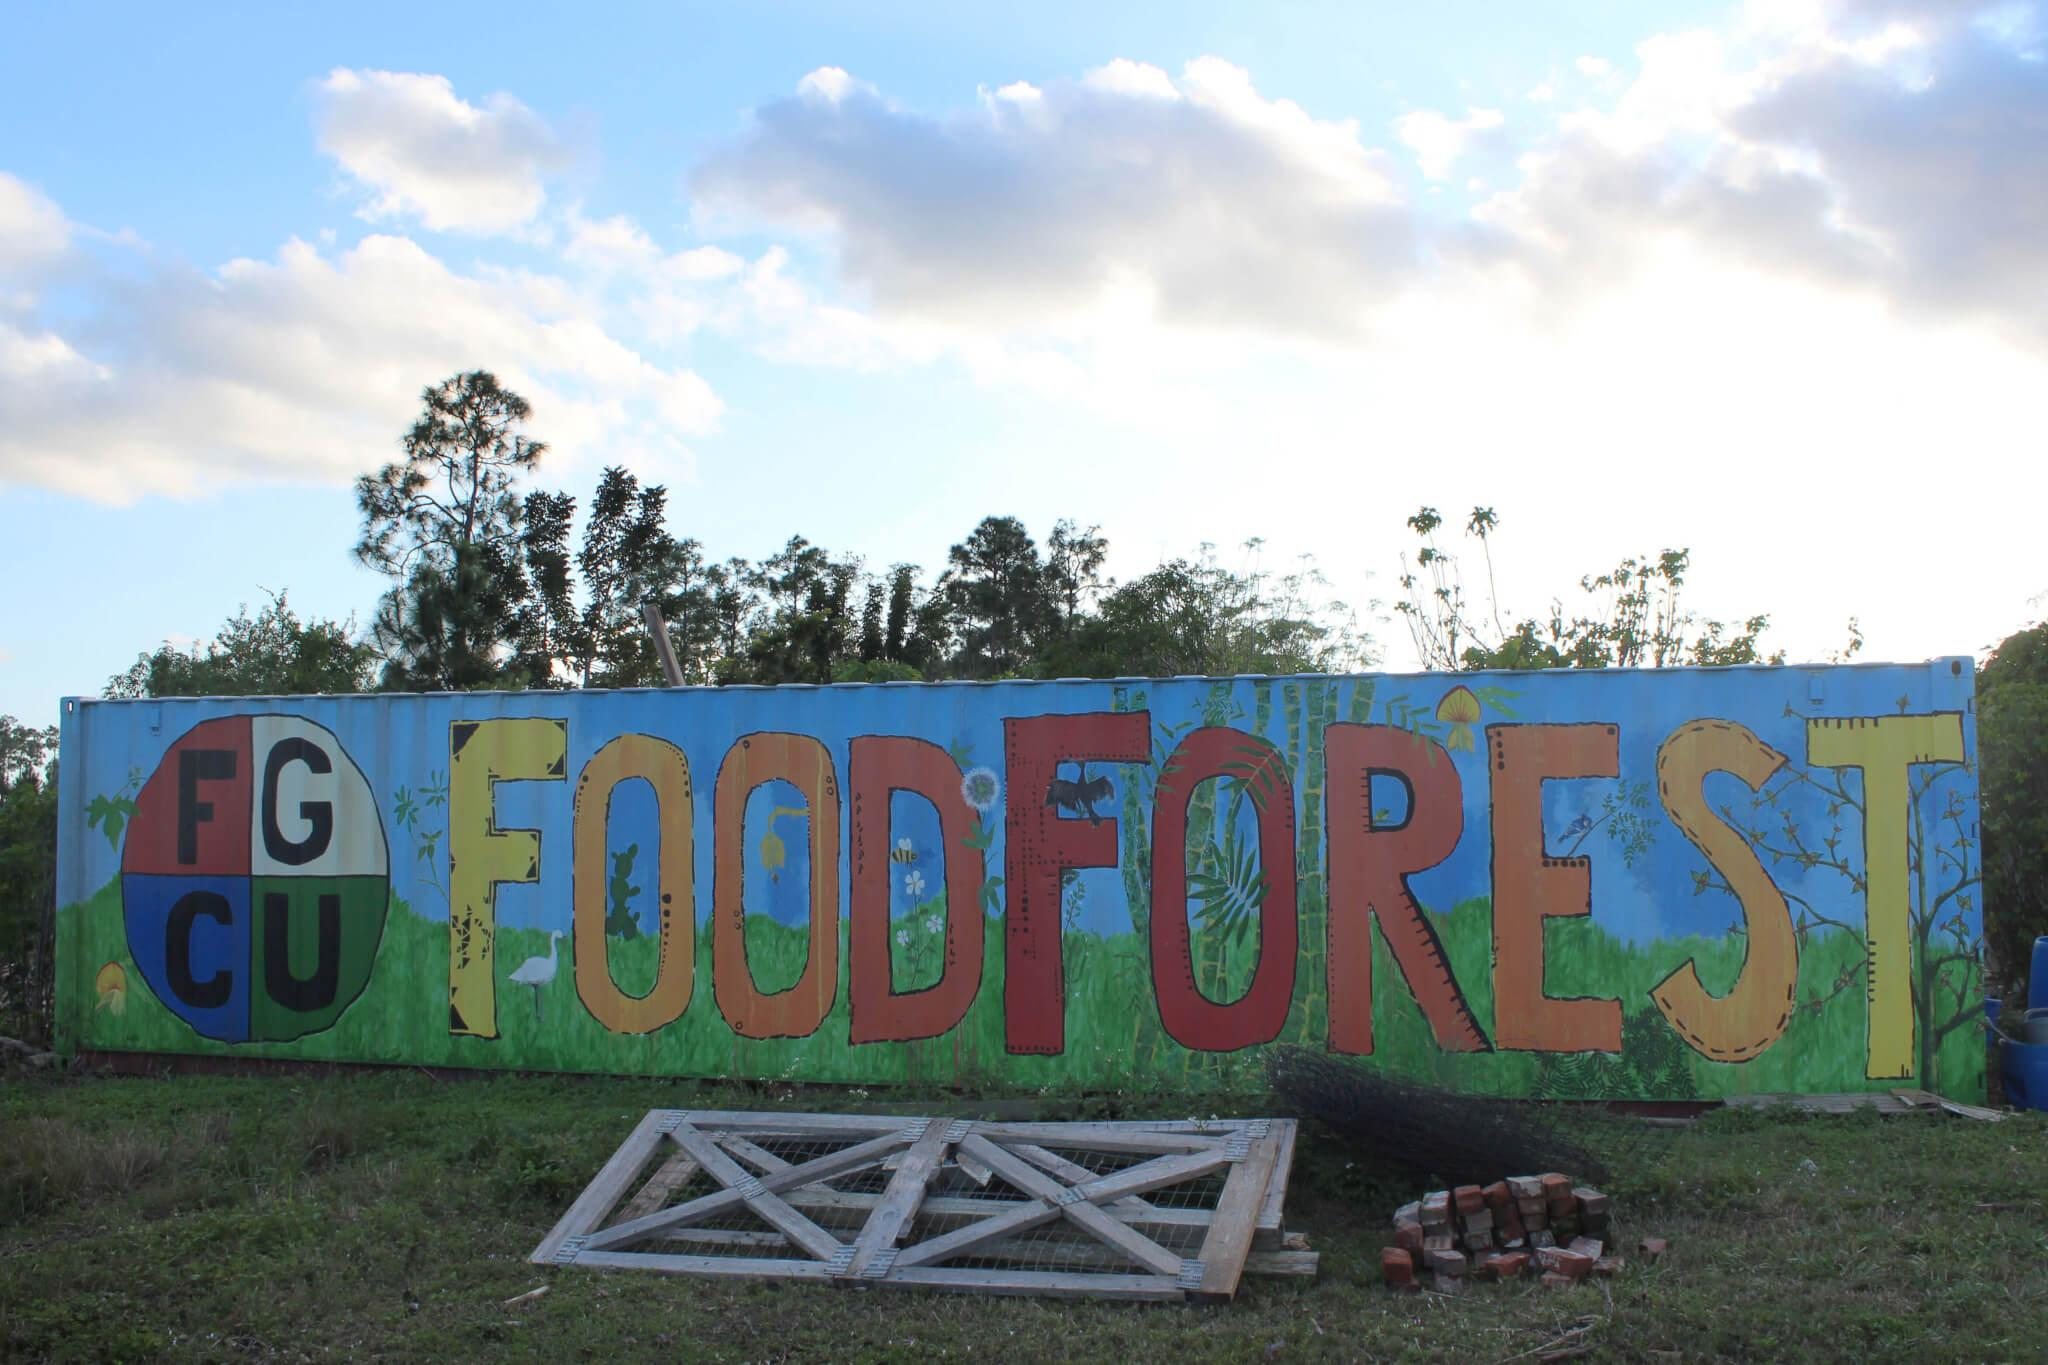 Real Food Challenge hopes to partner with Food Forest